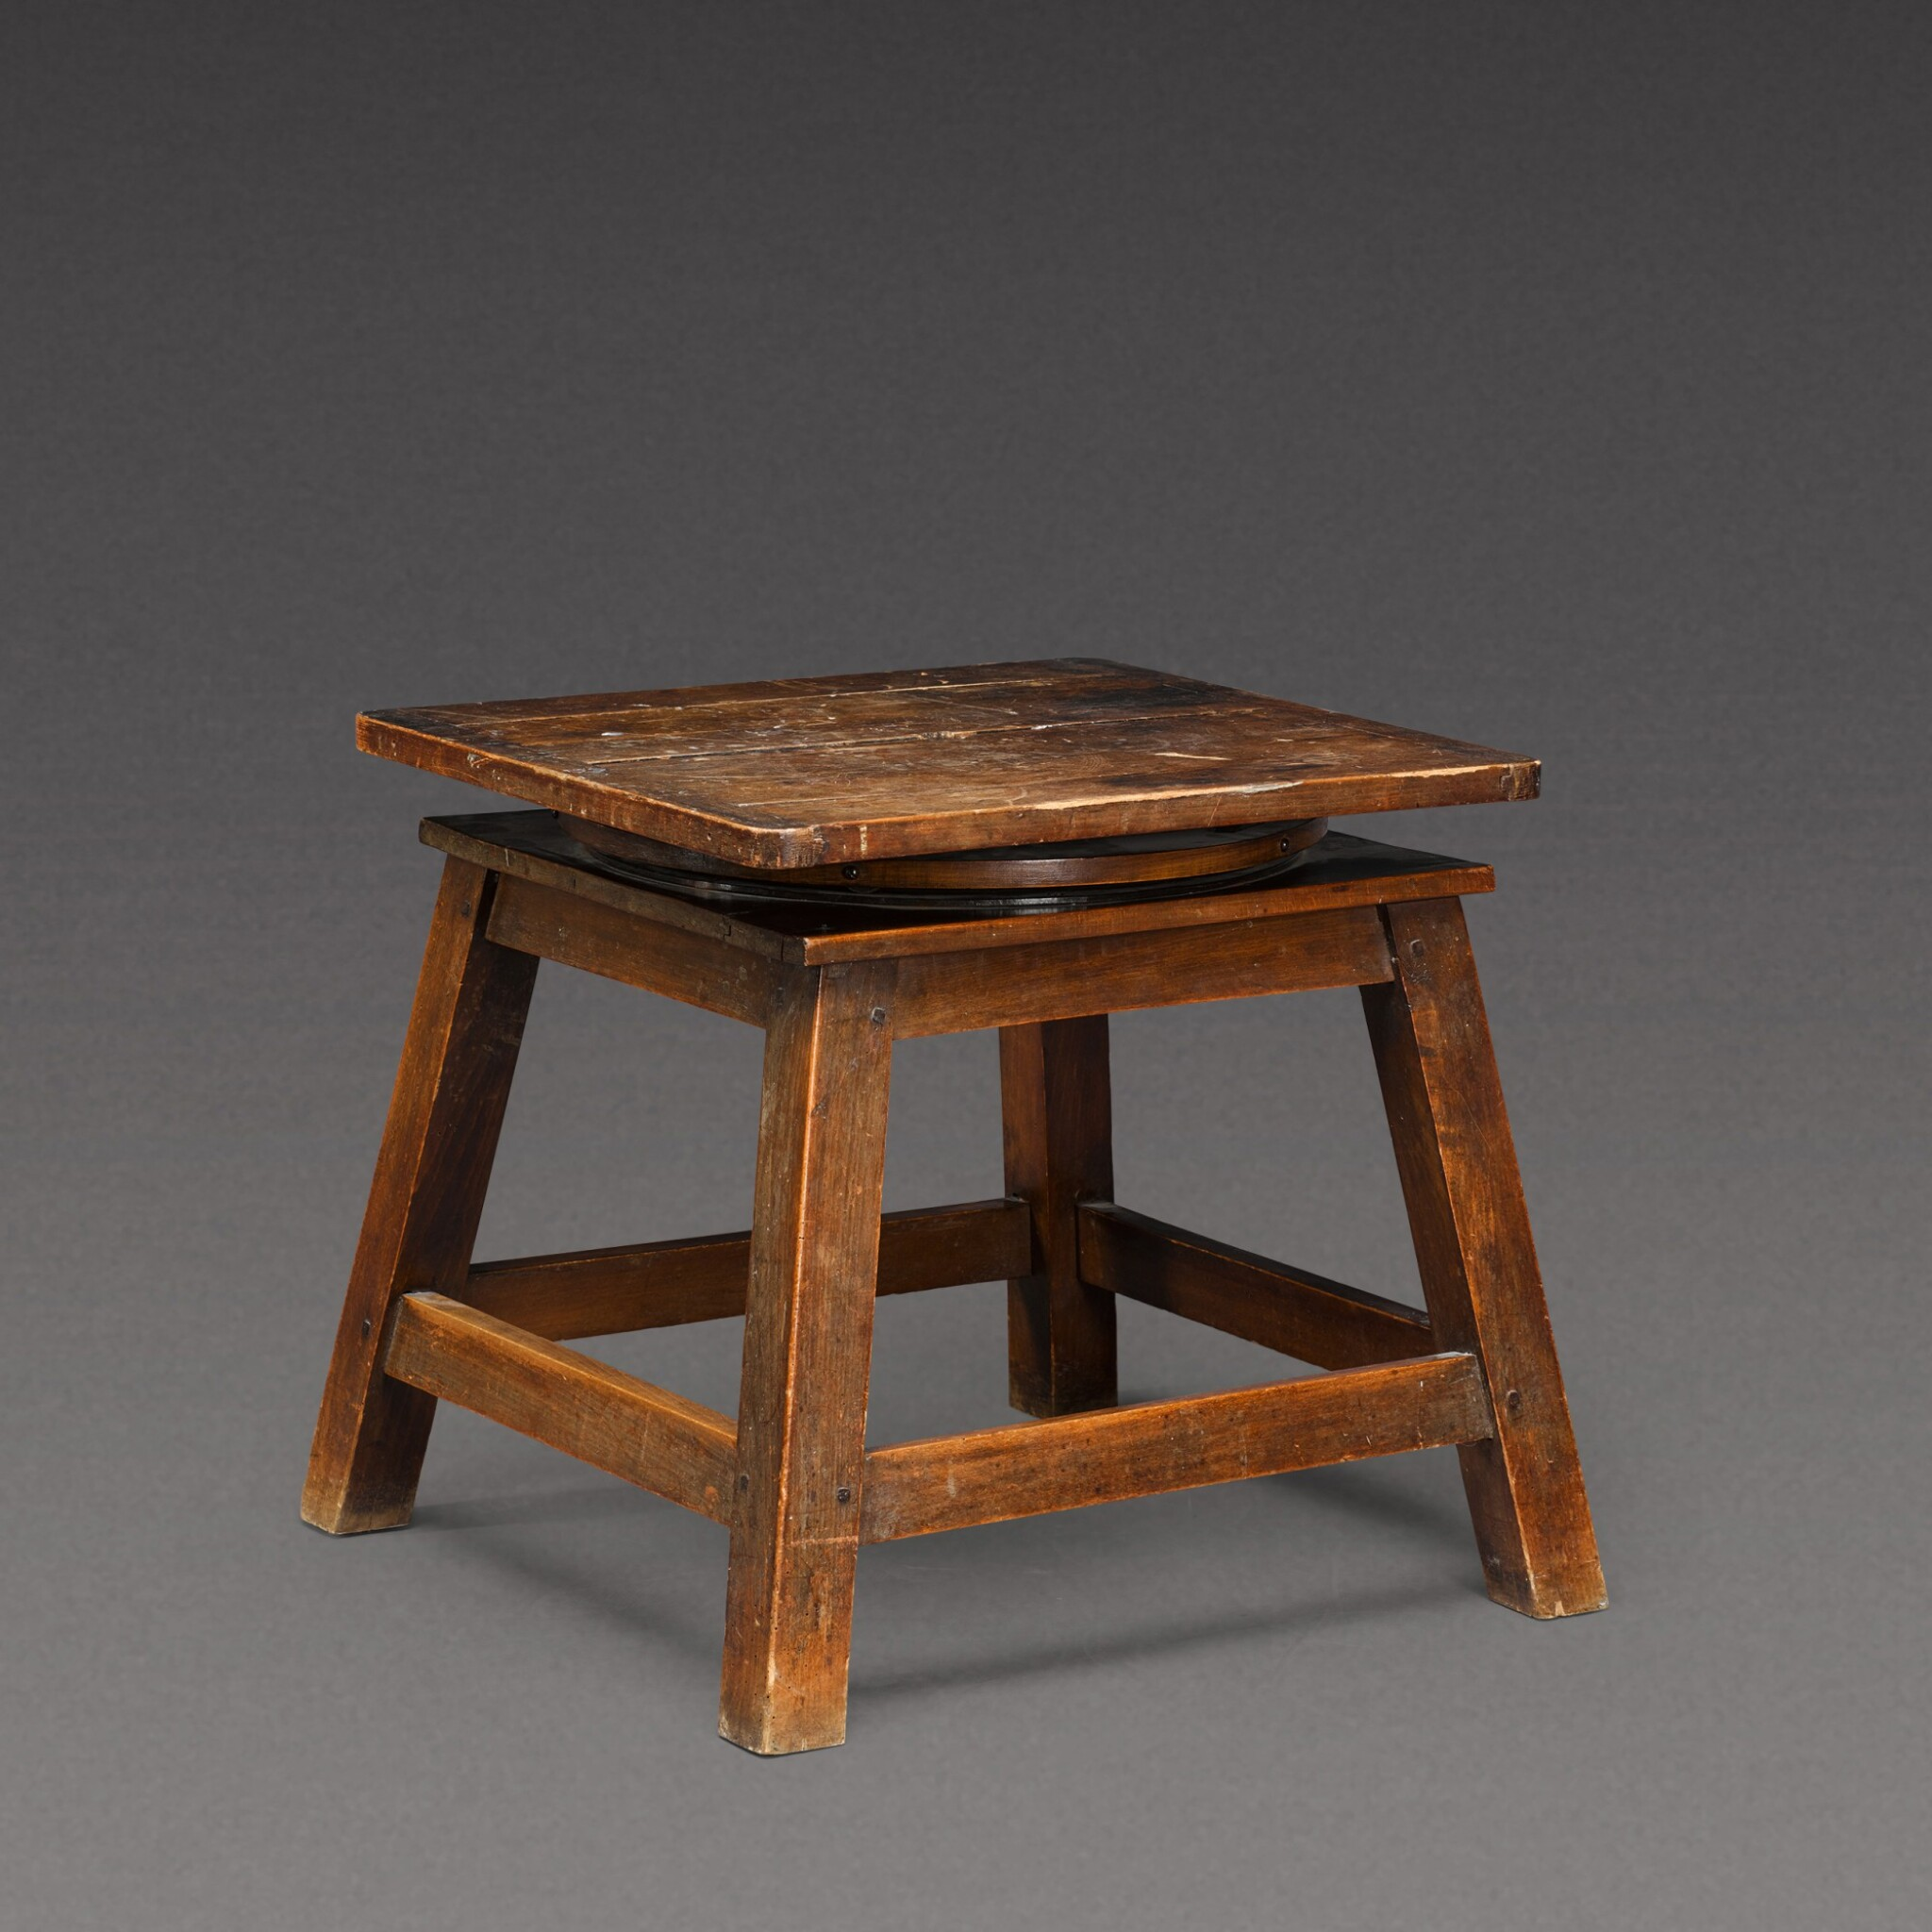 View 1 of Lot 175. A sculptor's walnut tripod low stand, probably French, early 20th century.